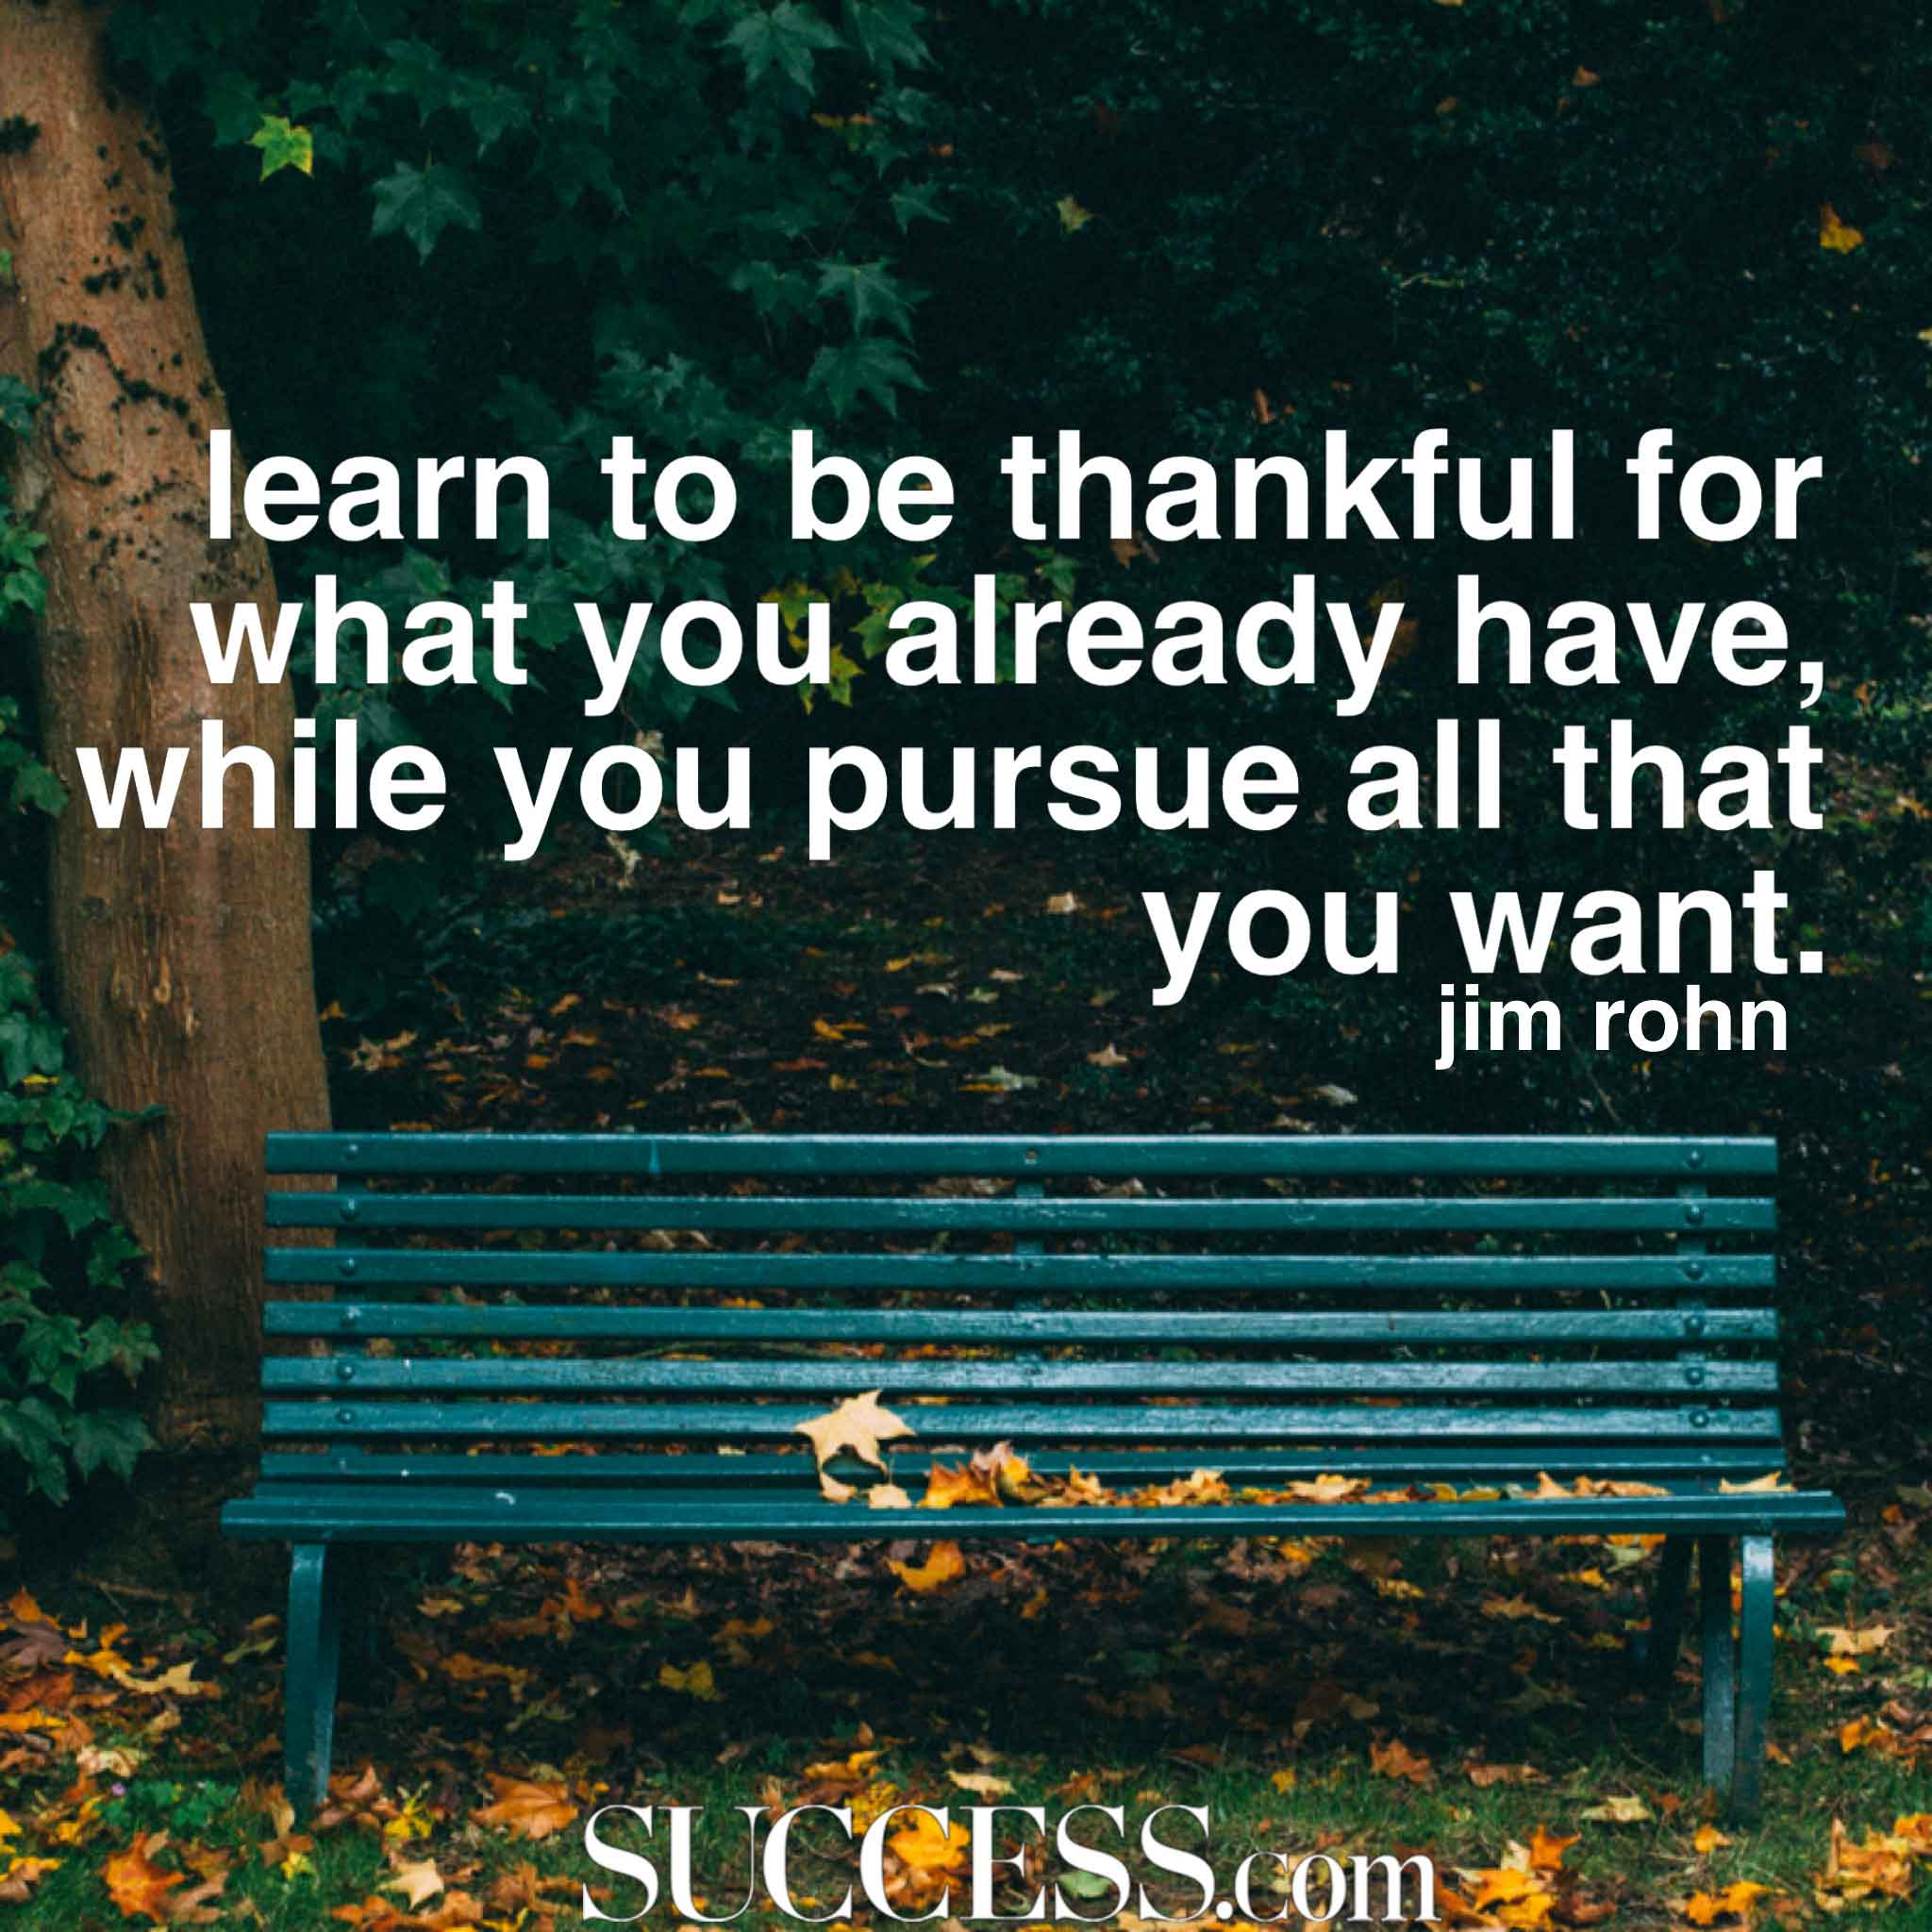 15 Thoughtful Quotes About Gratitude